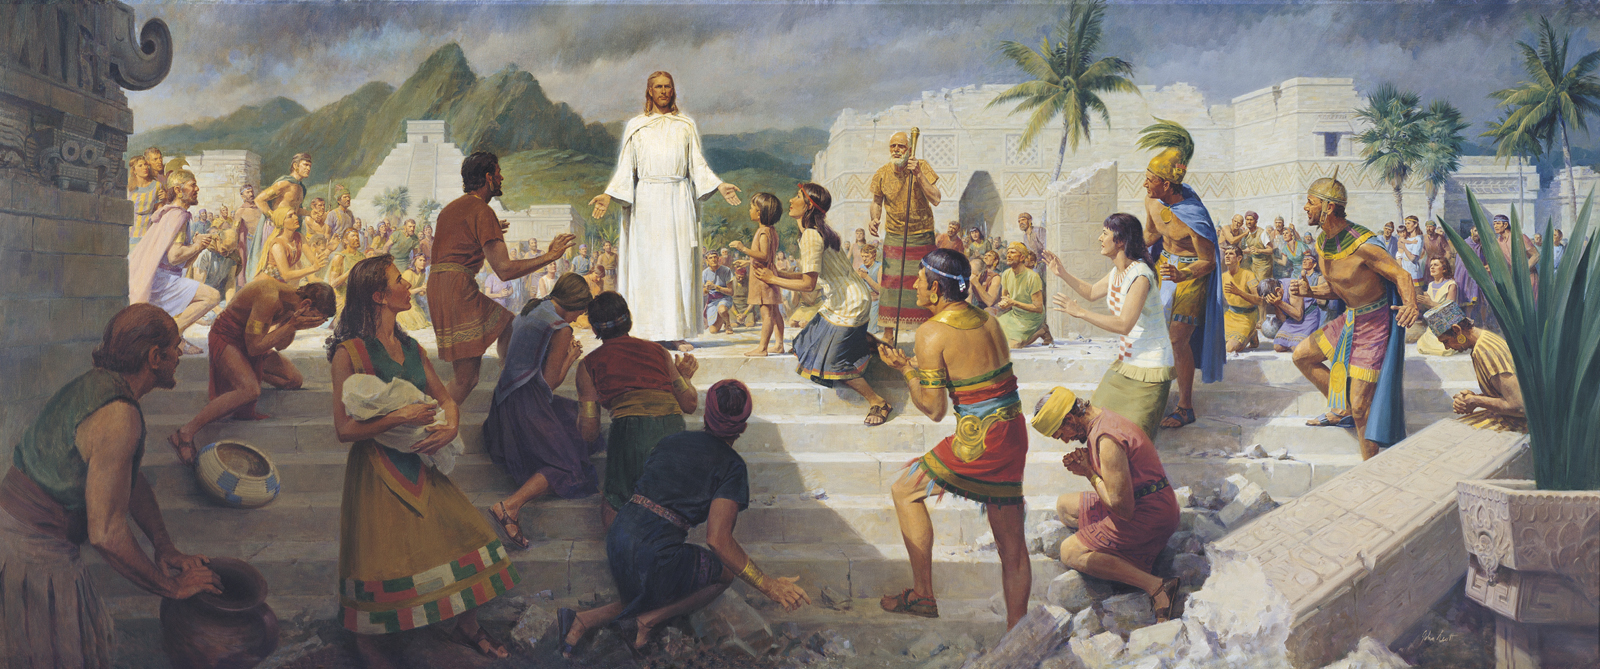 christ-teaching-nephites-39665-print.jpg